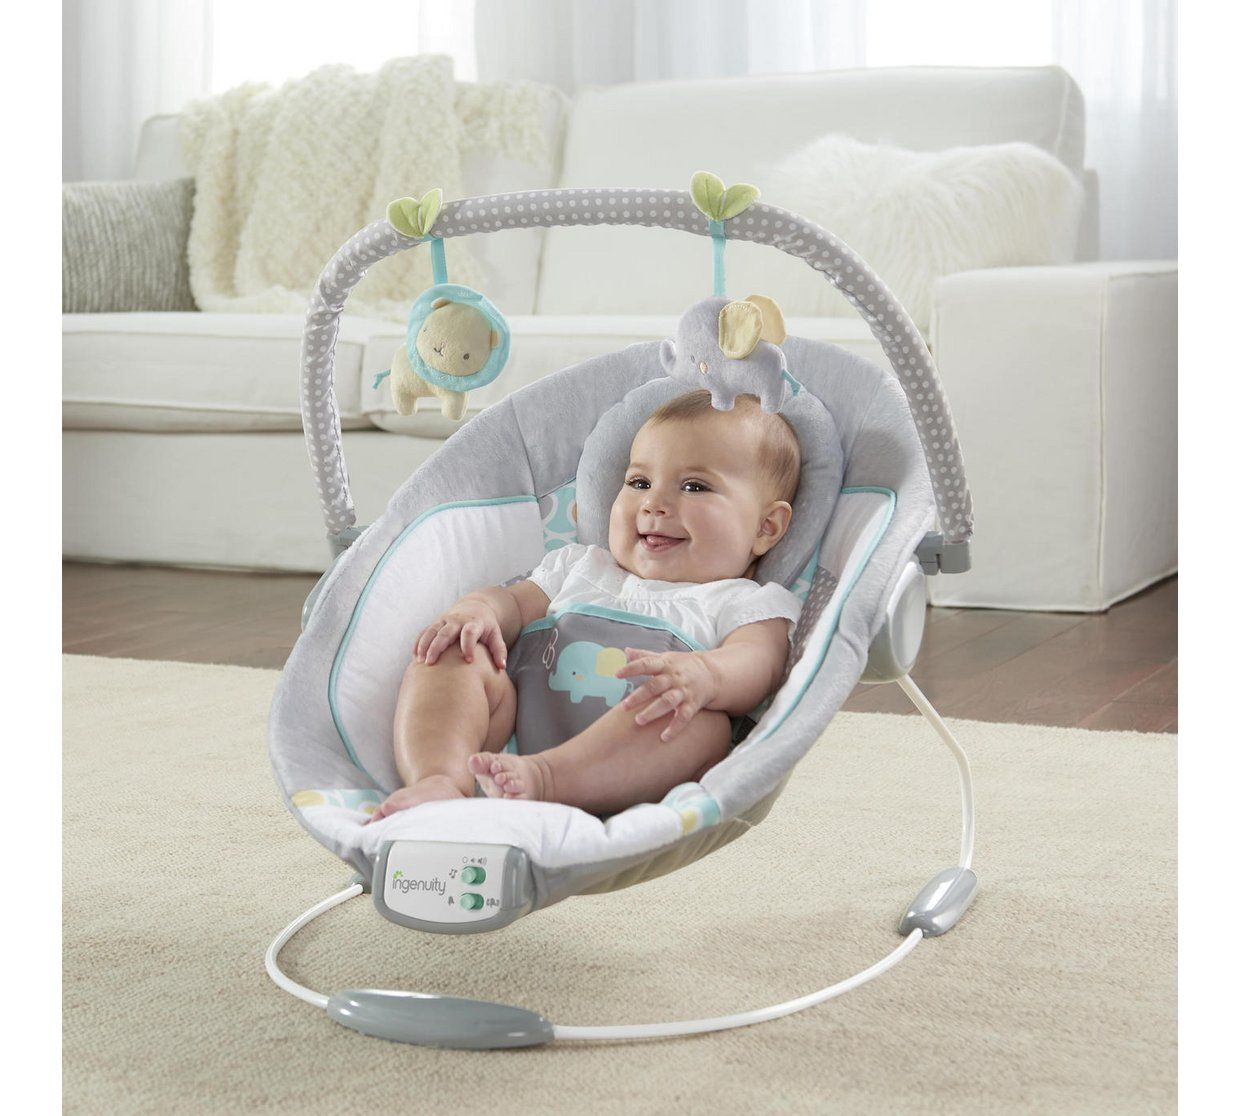 Bouncer Baby Buy Ingenuity Morrison Baby Bouncer Baby Bouncers Argos